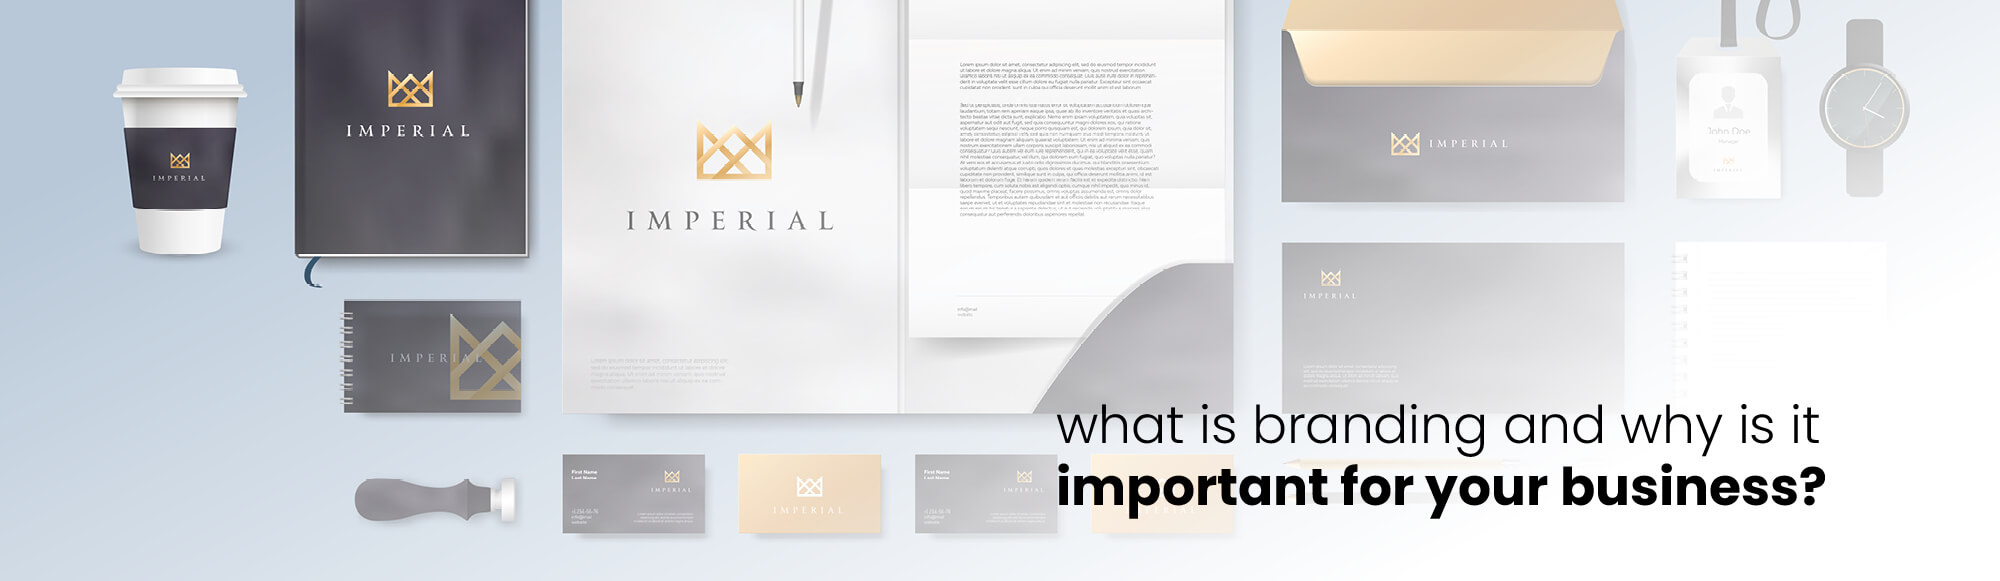 Why is Brand Imagery Vital to Your Company's Success